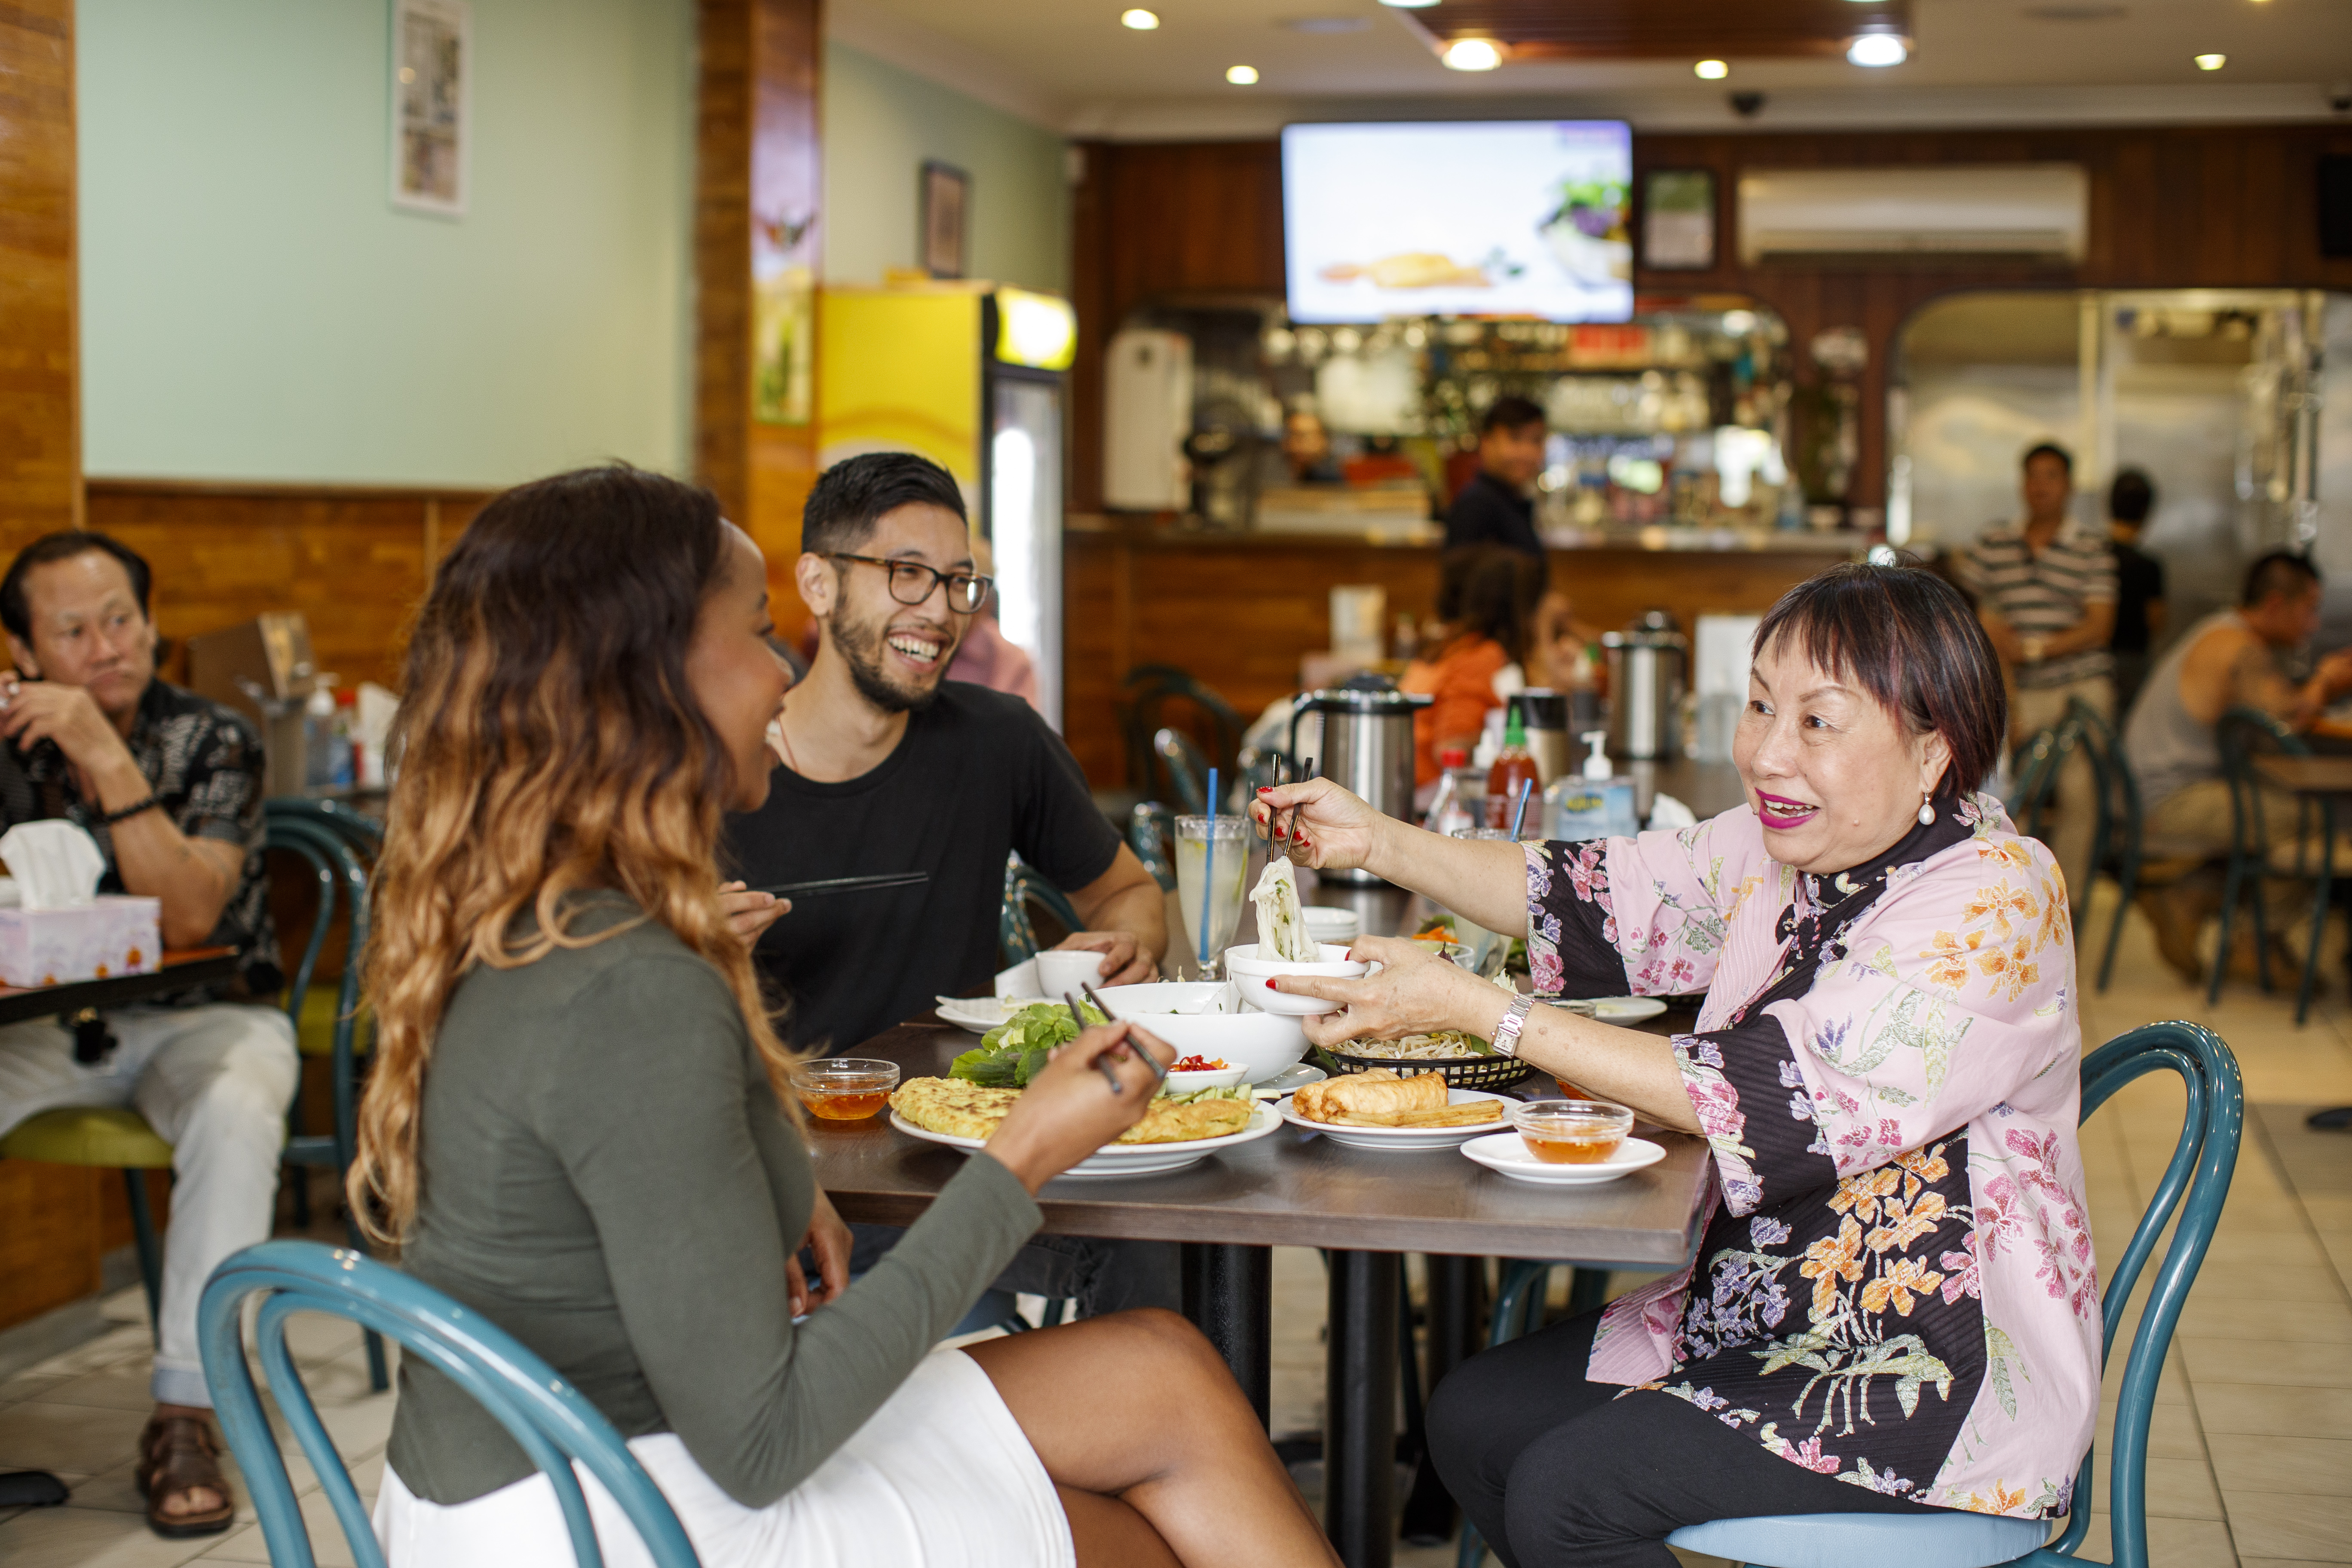 Foodie and former owner of Thanh Binh Restaurant, Angie Hong, has developed a special culinary walking tour of Cabramatta, Sydney, Australia. 23/3/2017 Photo - James Horan